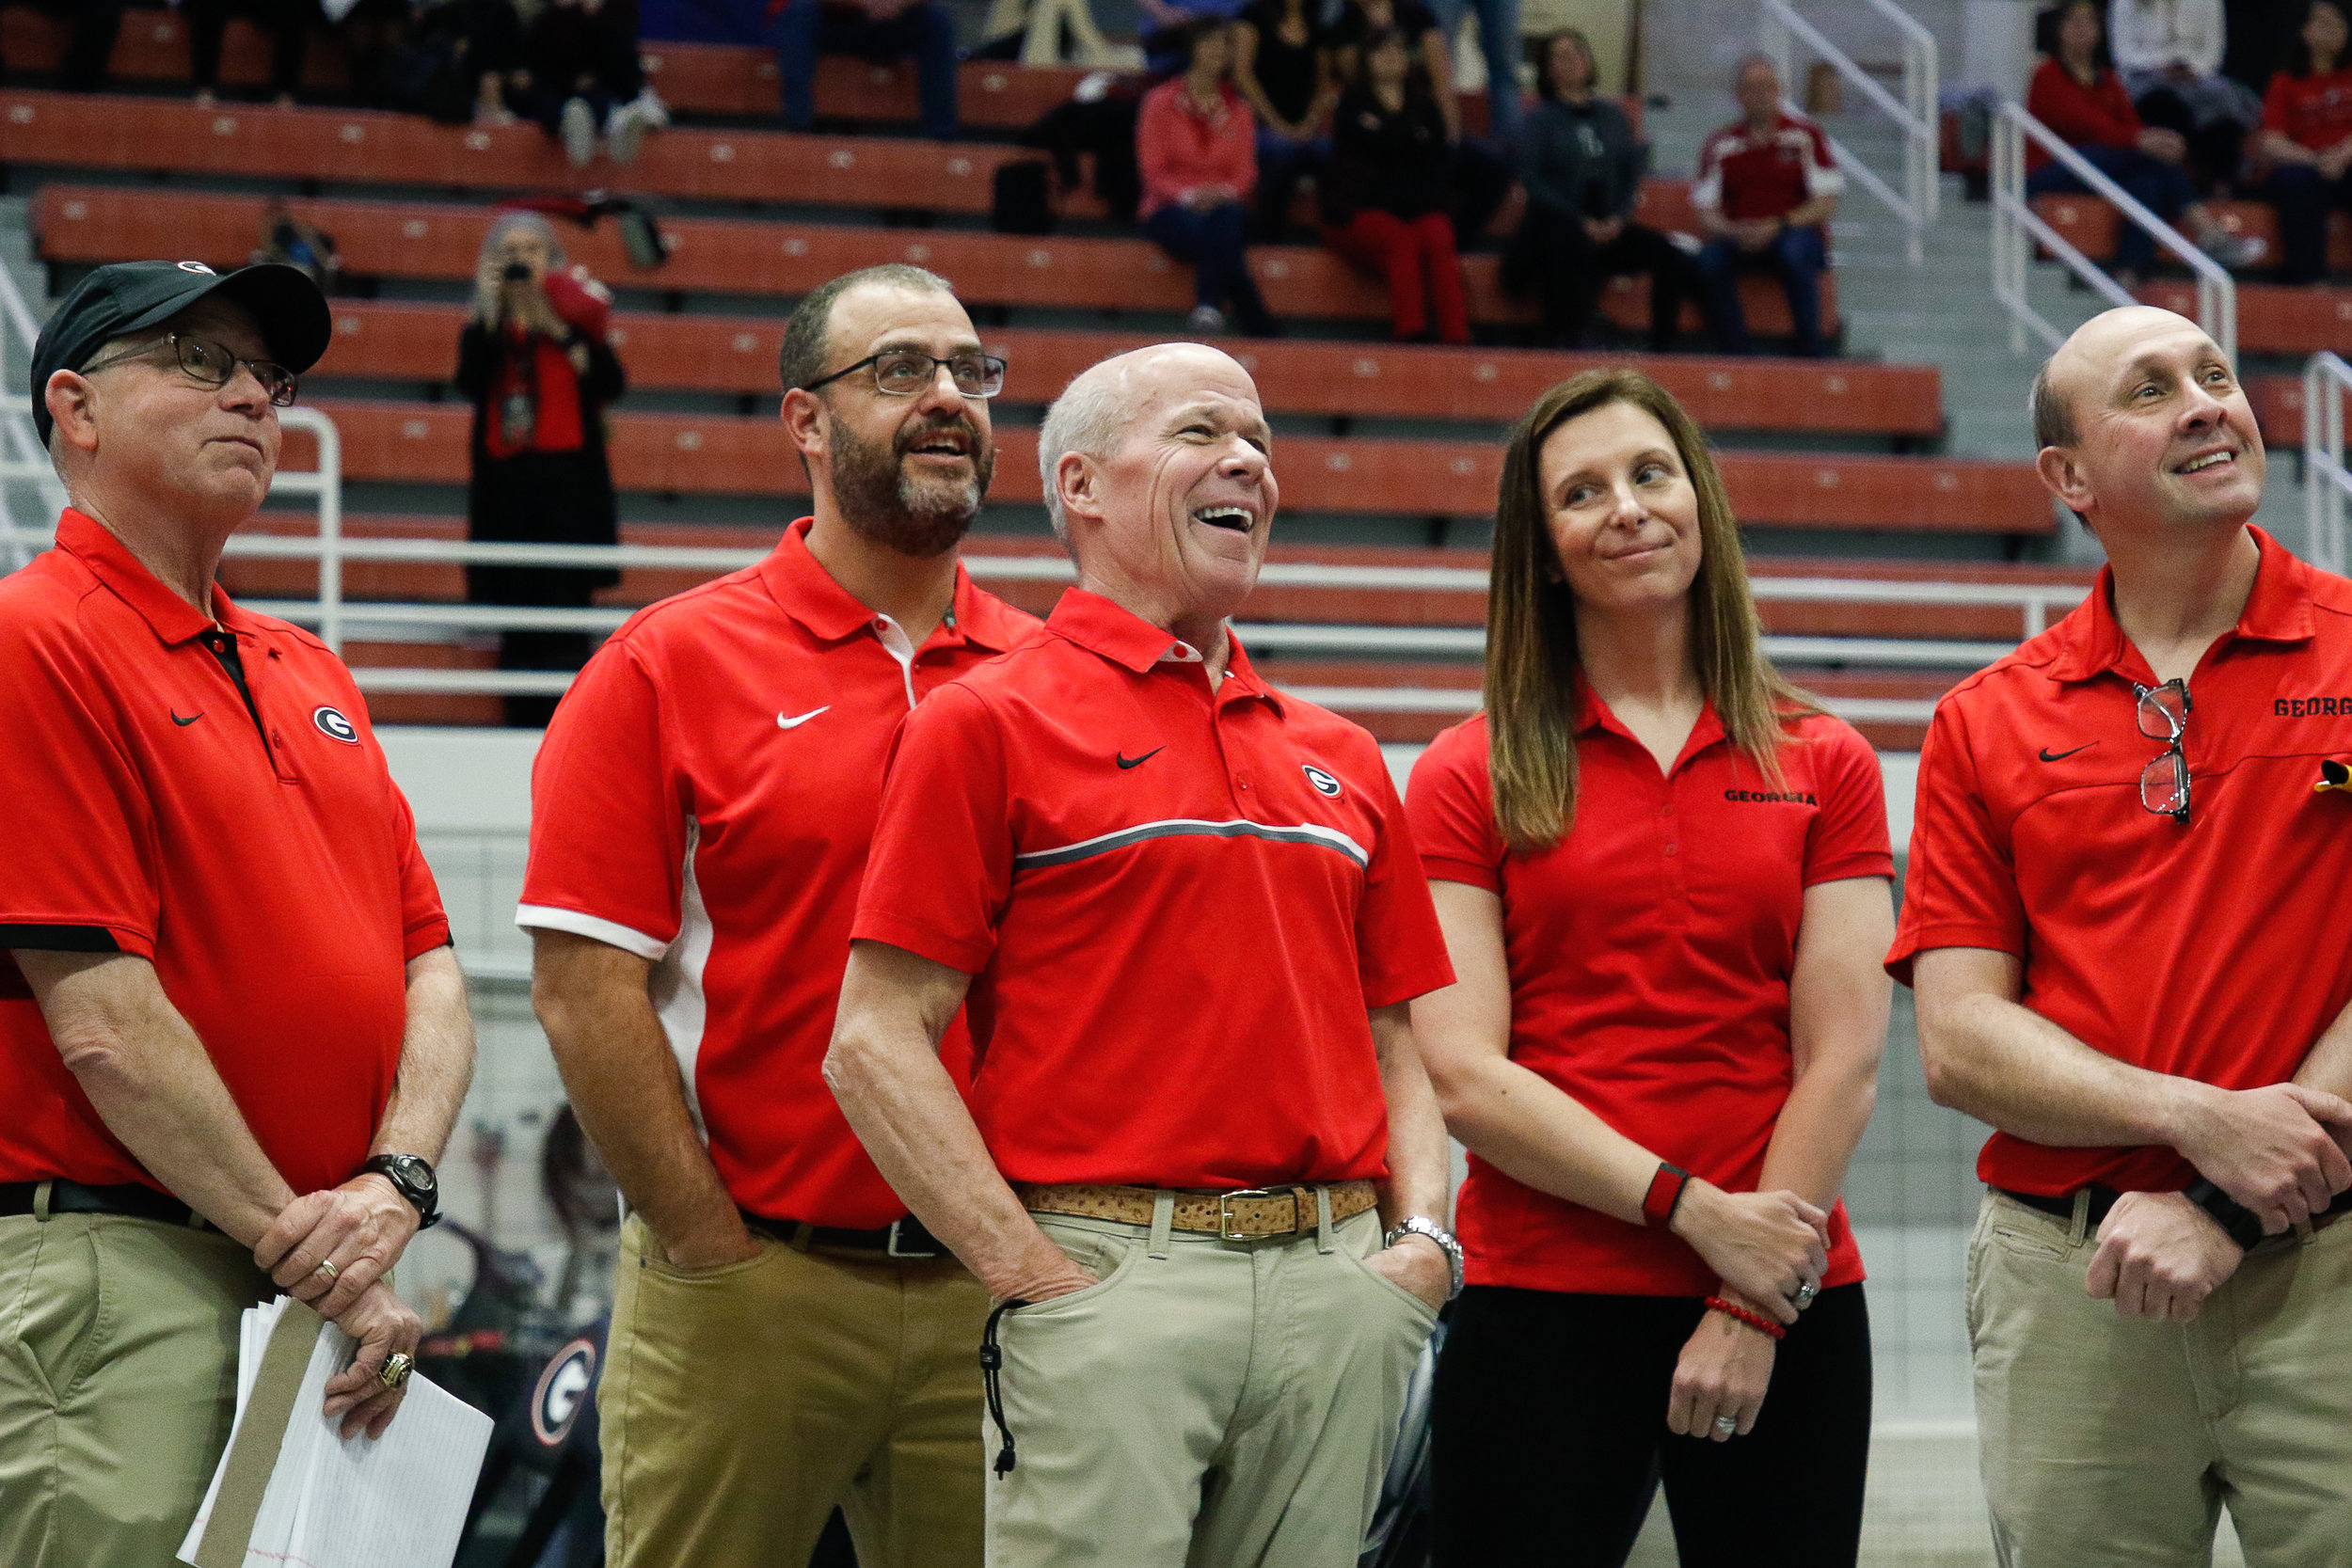 Georgia's associate head coach Stefanie Williams Moreno smiles while watching Georgia head coach Jack Bauerle react to a tribute video made for his 40 years of coaching on Saturday, Feb. 2, 2019. Moreno was among many of Bauerle's former swimmers that appeared in the video.